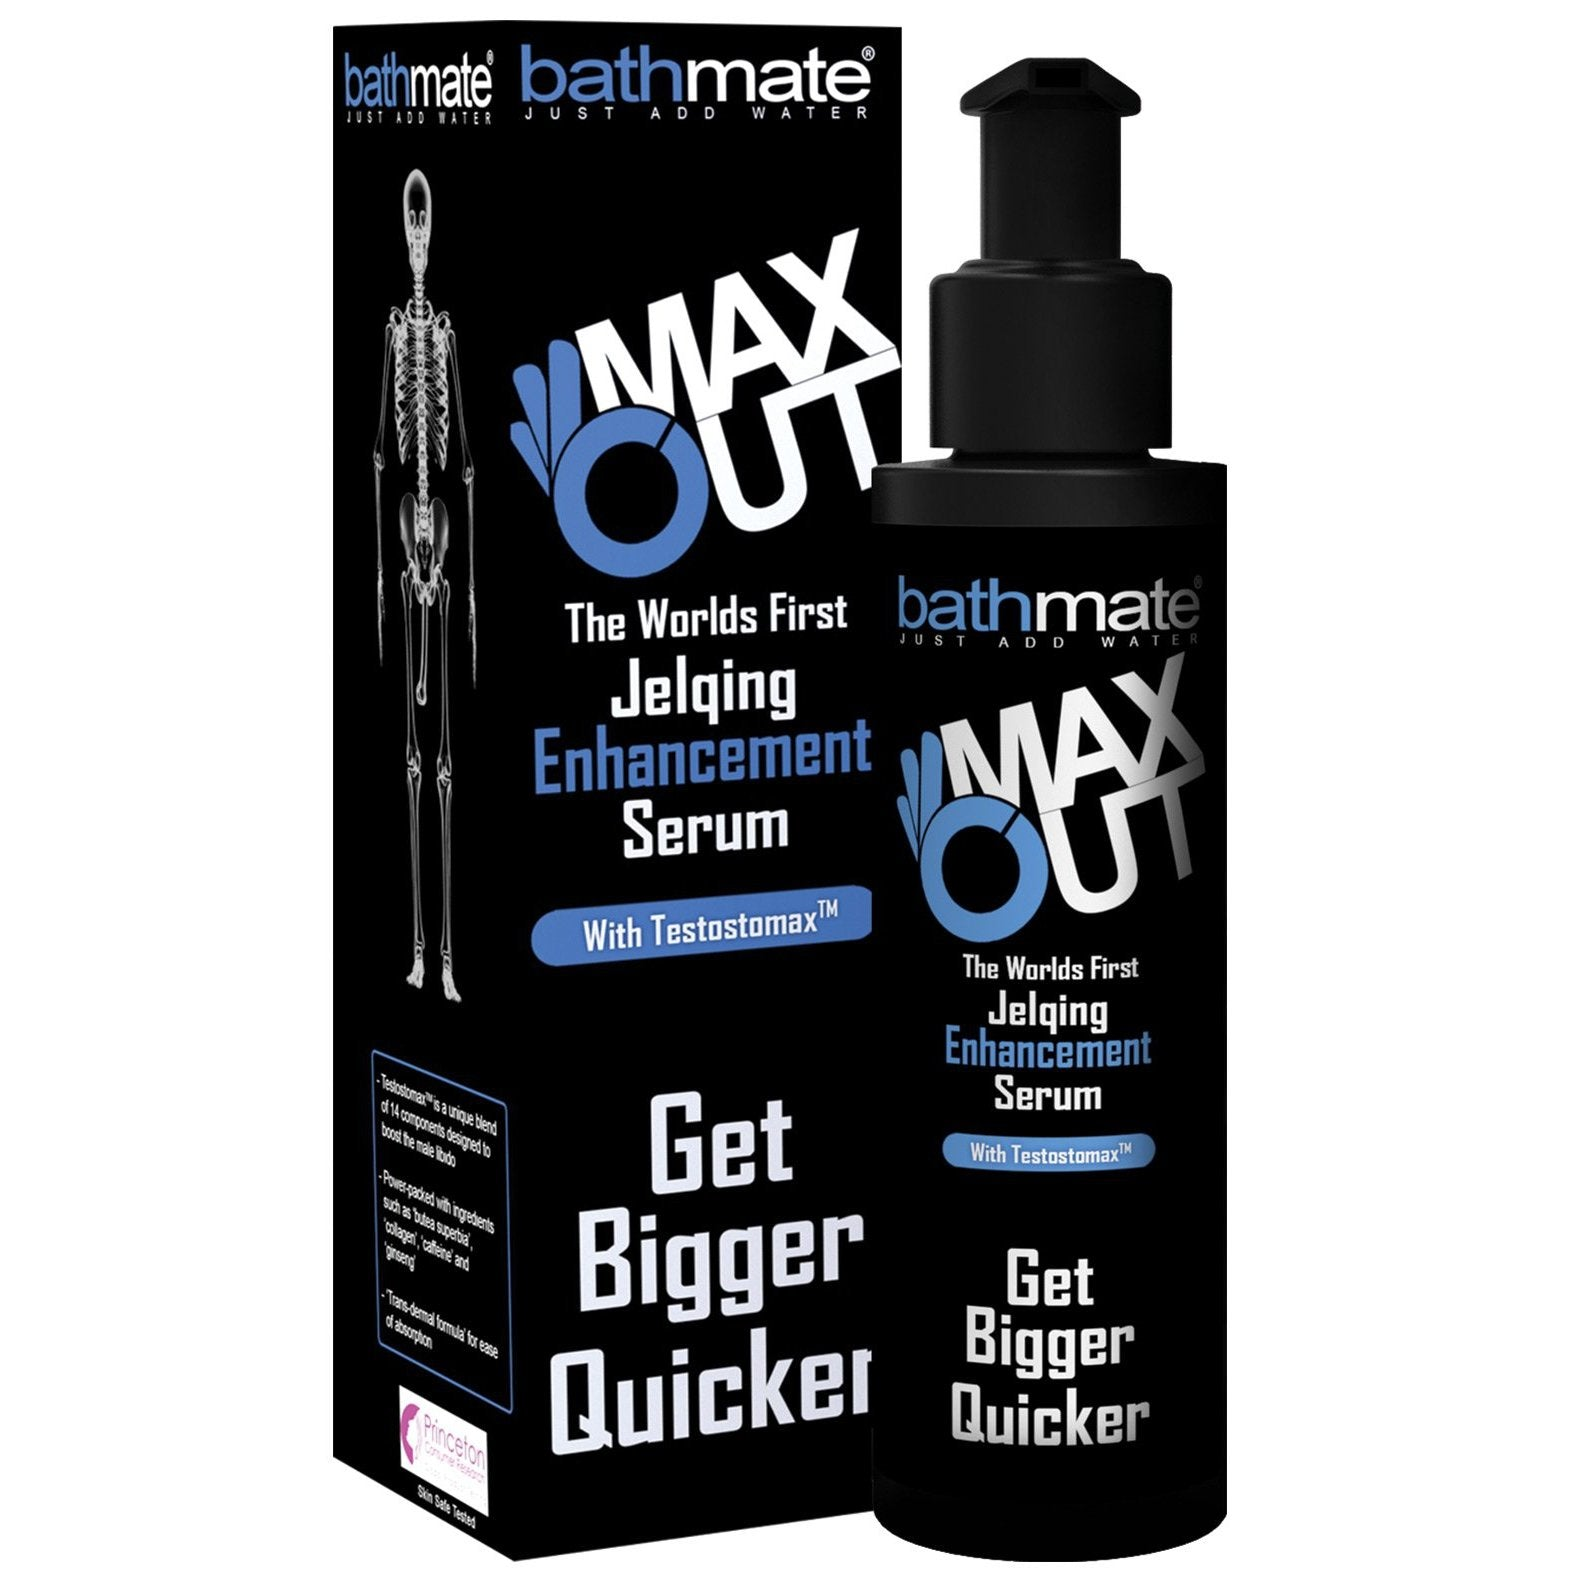 Bathmate Max Out Jelging Enhancement Serum - Gay Men's Sex Toys - Adam's Toy Box